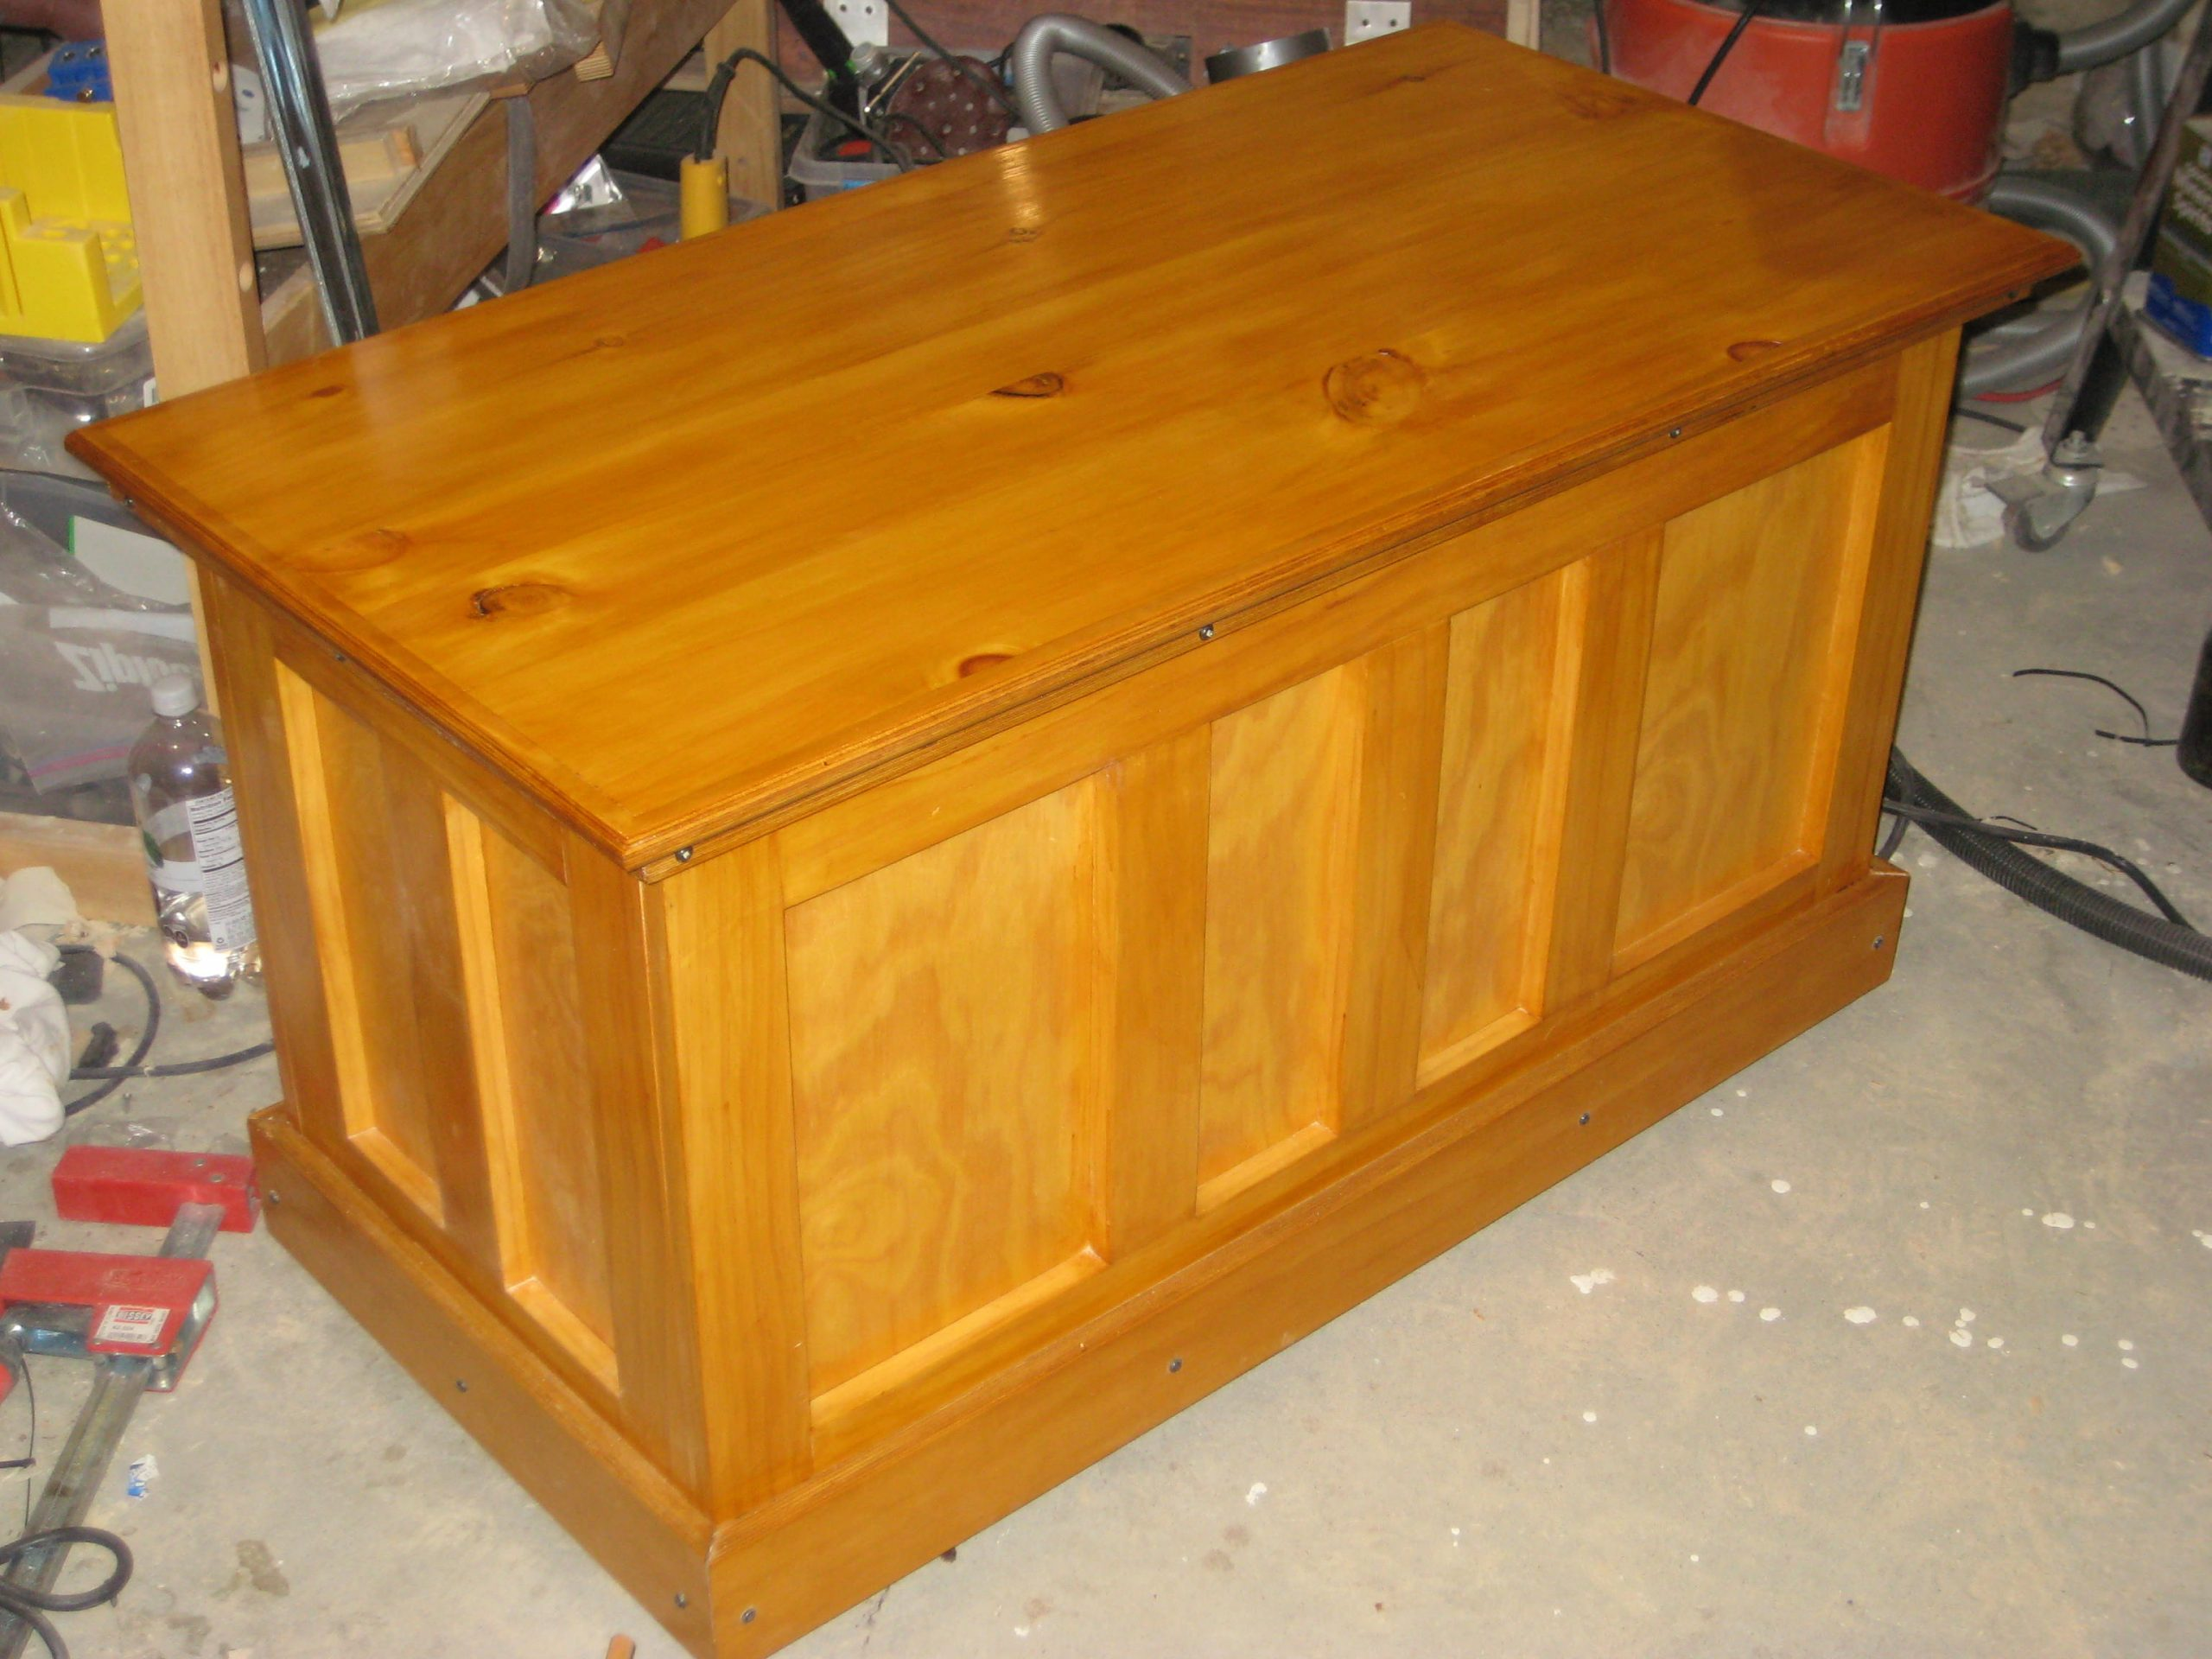 Michael Esposito's Pine Blanket Chest